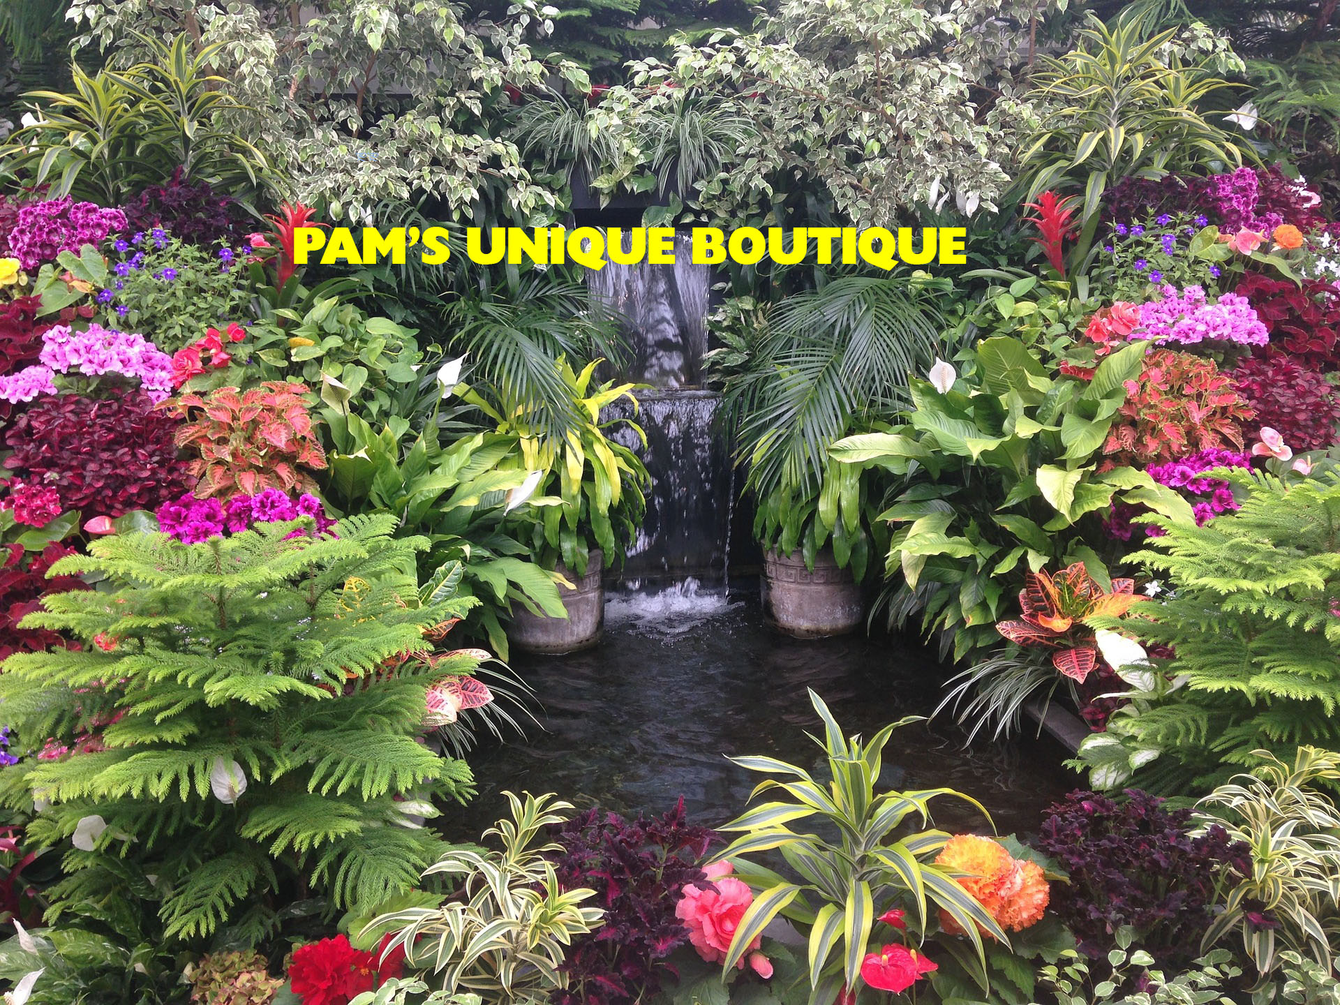 PAM'S UNIQUE BOUTIQUE